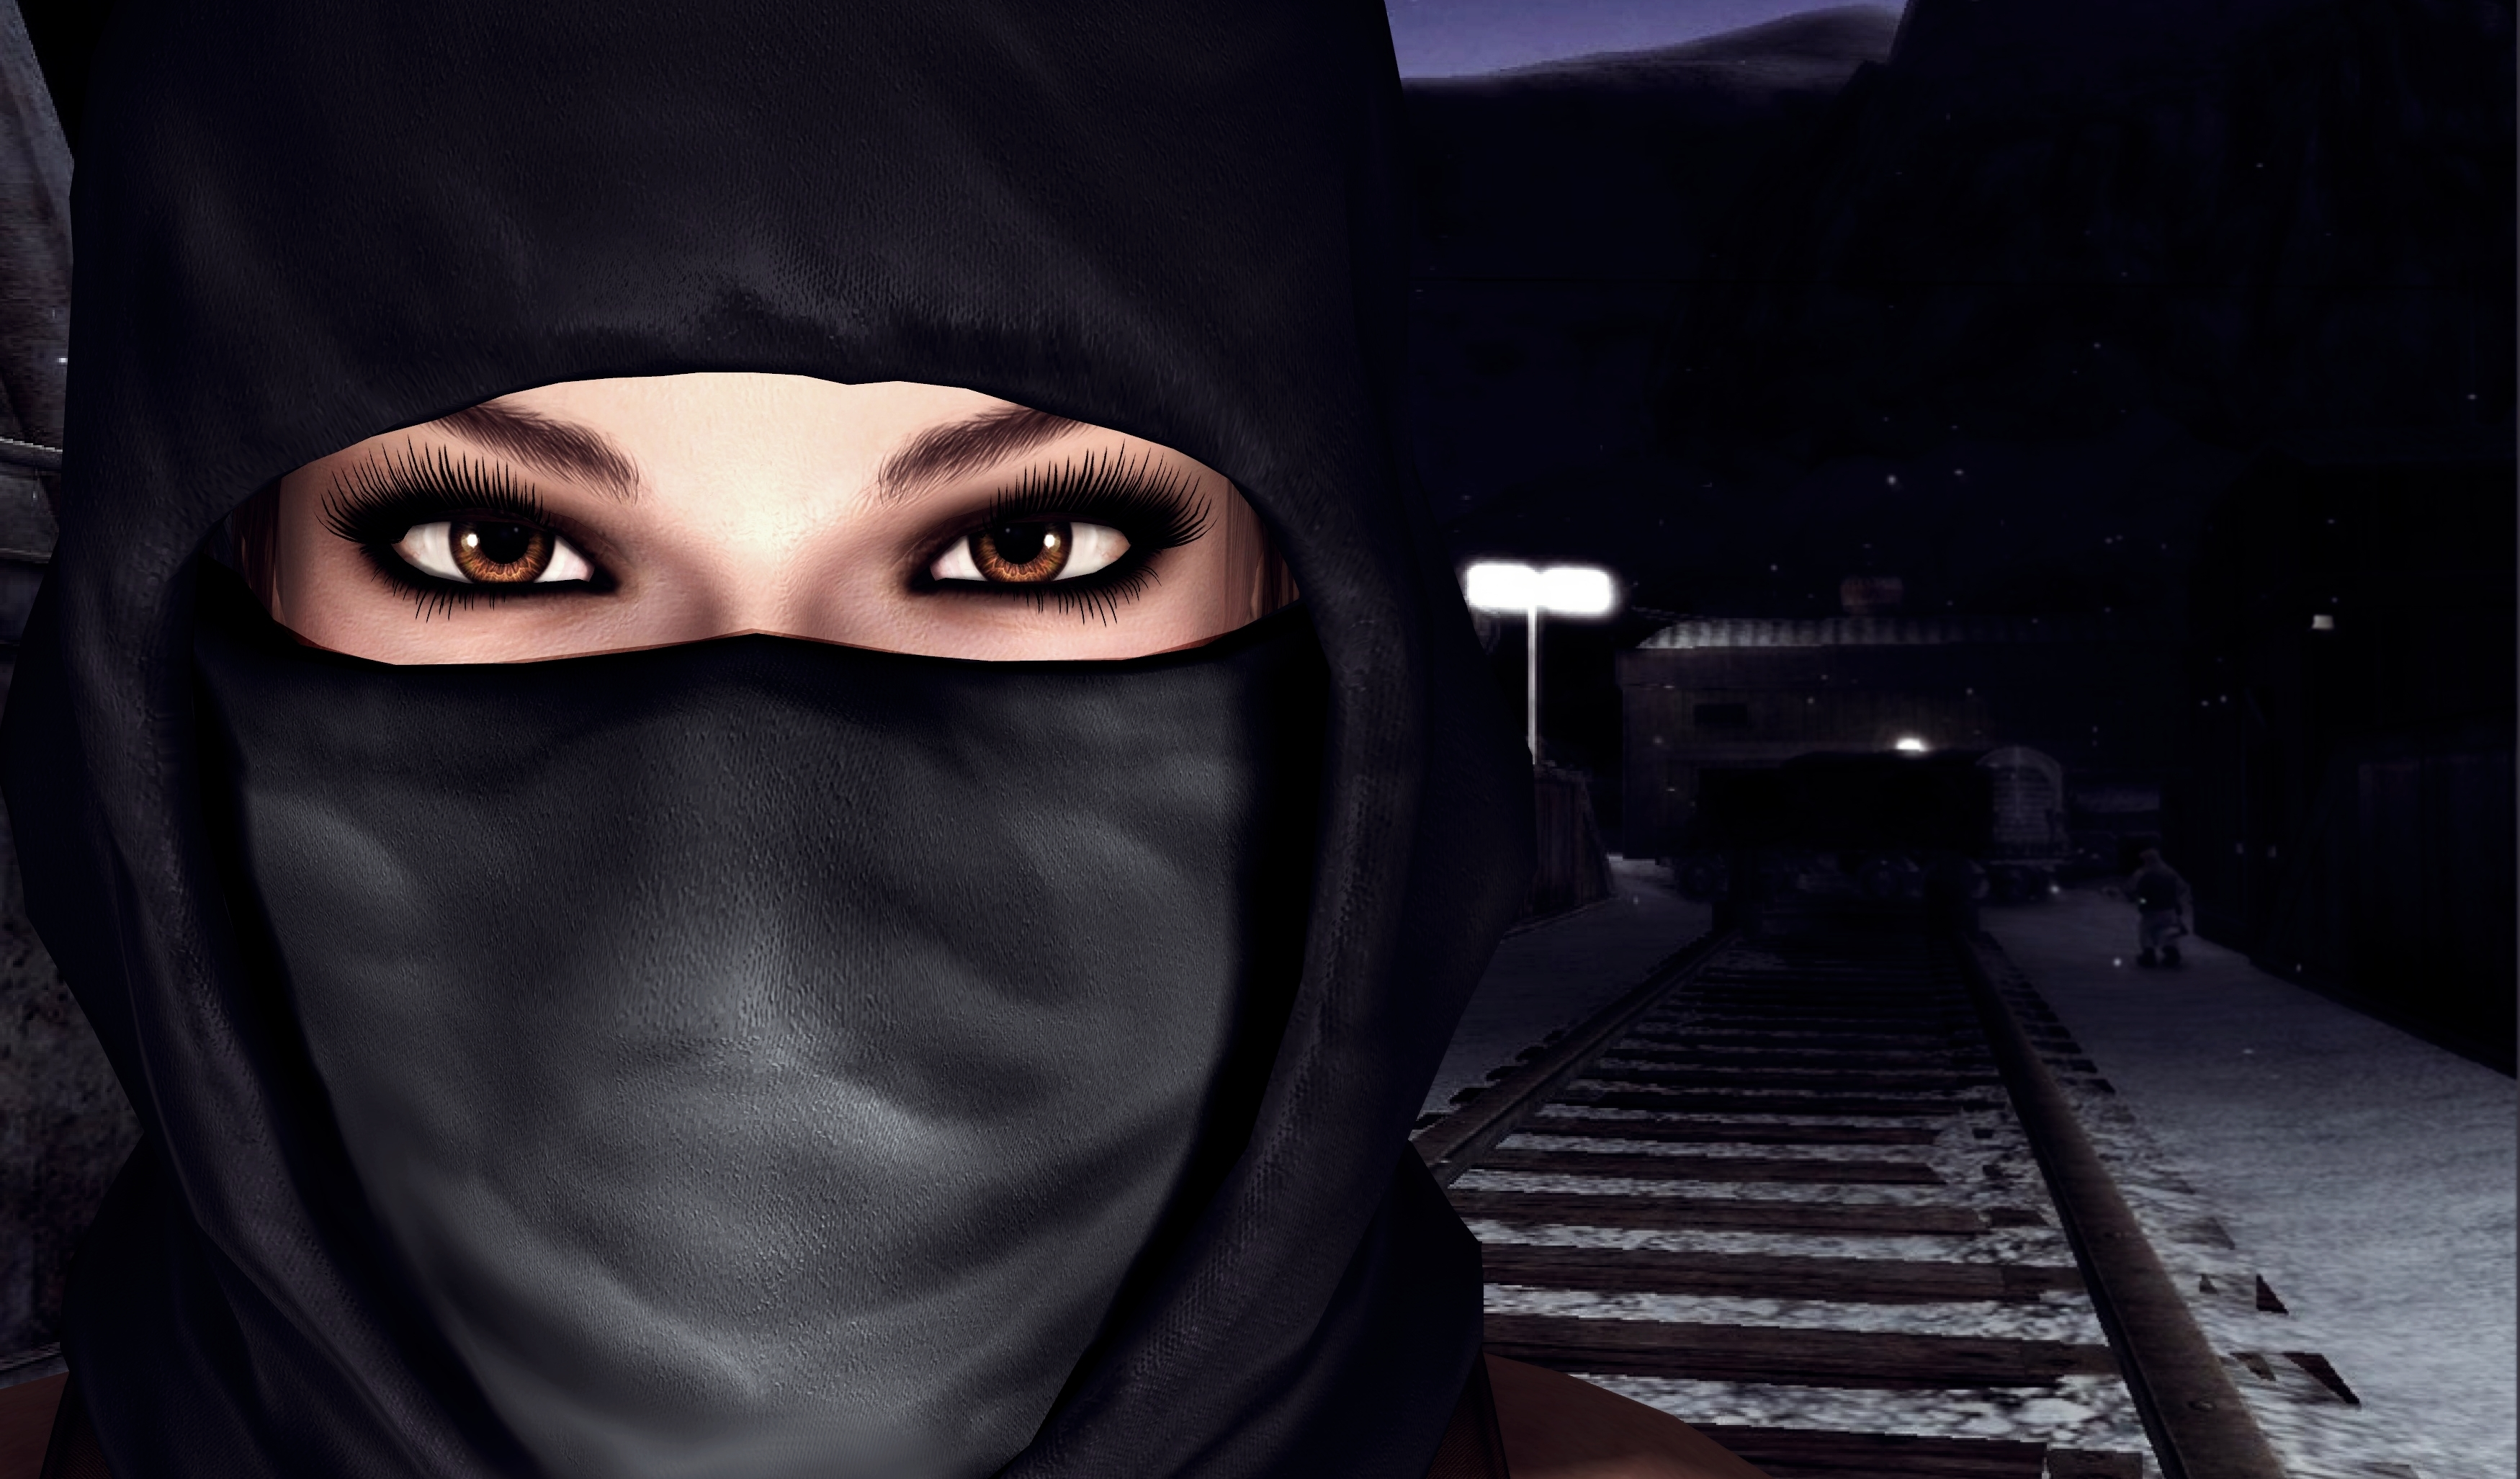 Tomb Raider Mask Railroad Eyes Glance Lara Croft Games Girls 3D Graphics warrior